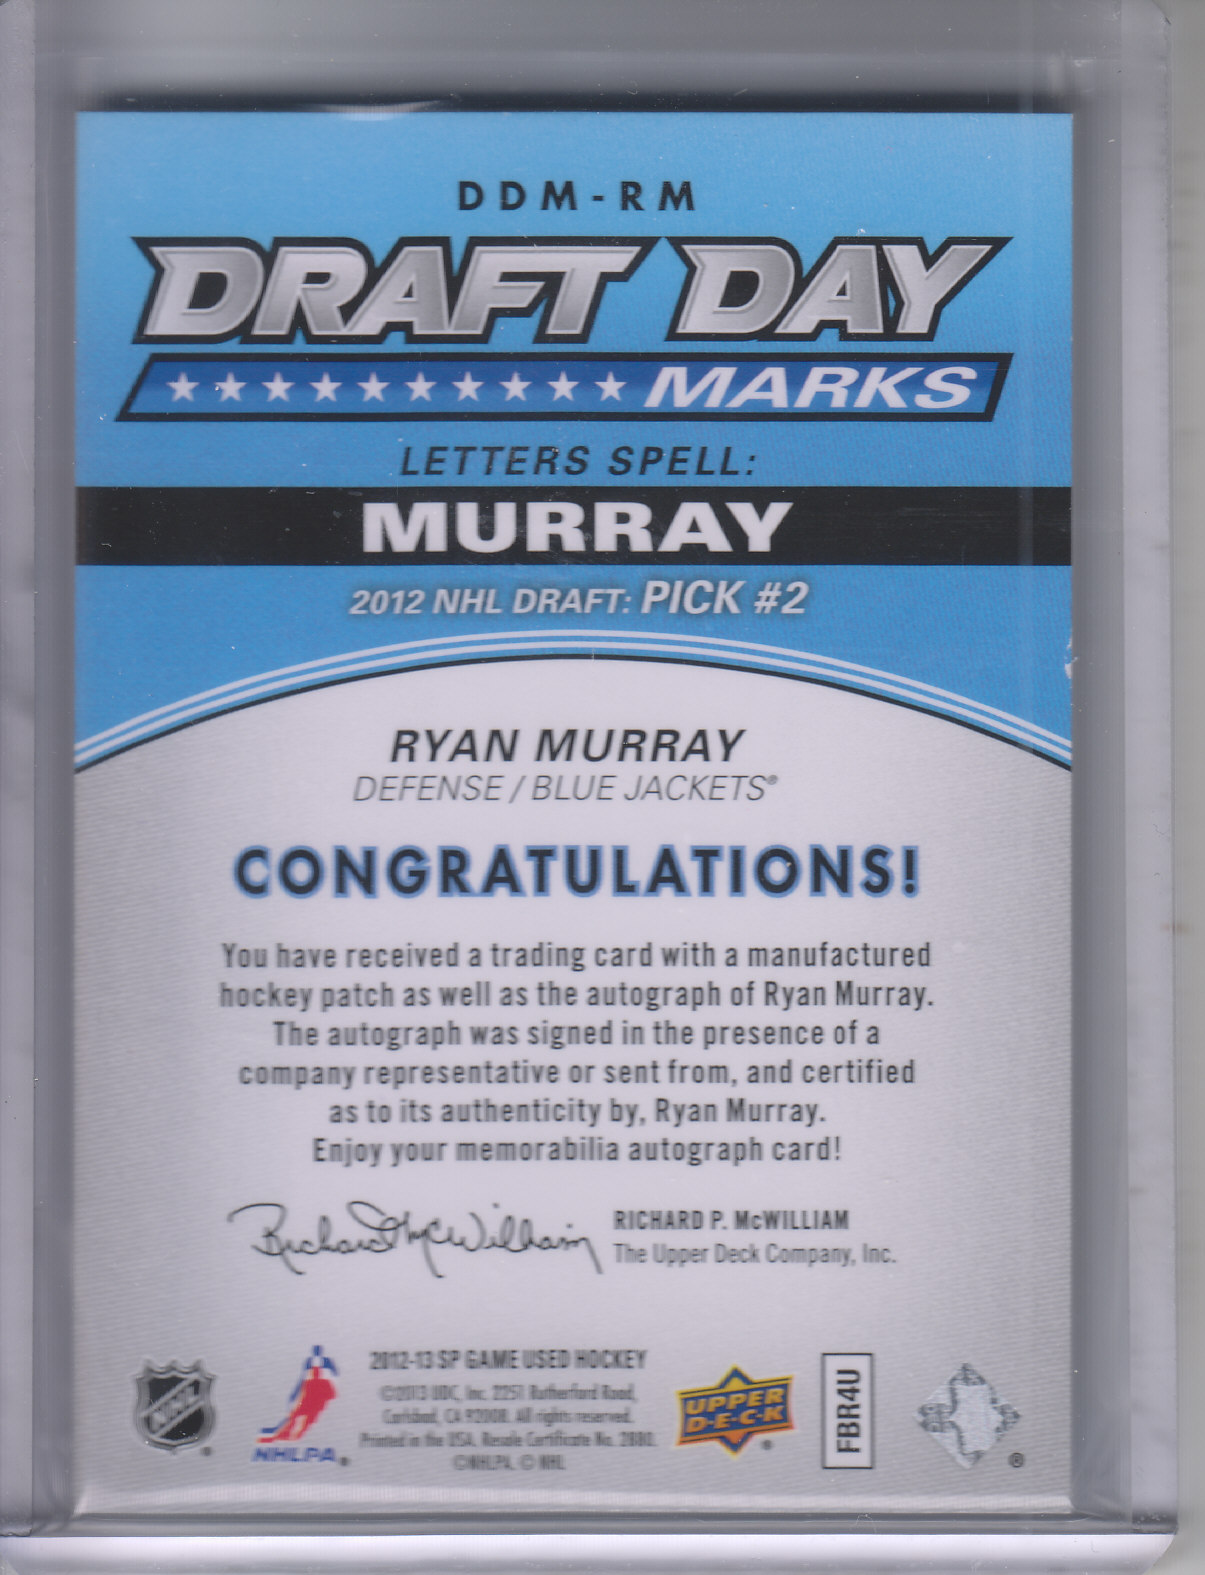 2013-14 SP Game Used Draft Day Marks #DDMRM2 Ryan Murray M/35